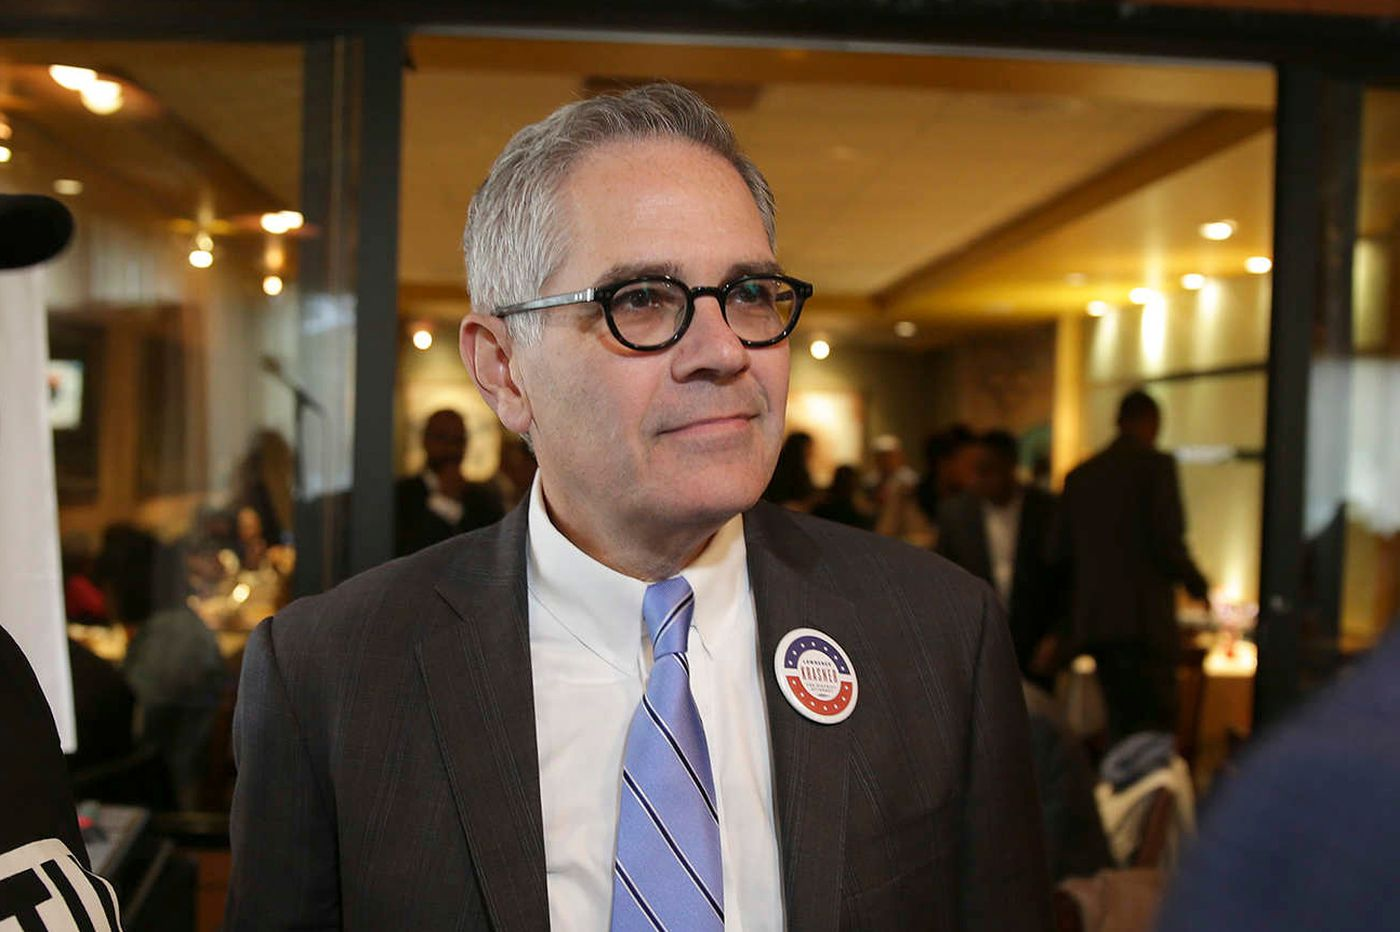 Philly DA Larry Krasner: We took on mass incarceration. Now we're addressing mass supervision.